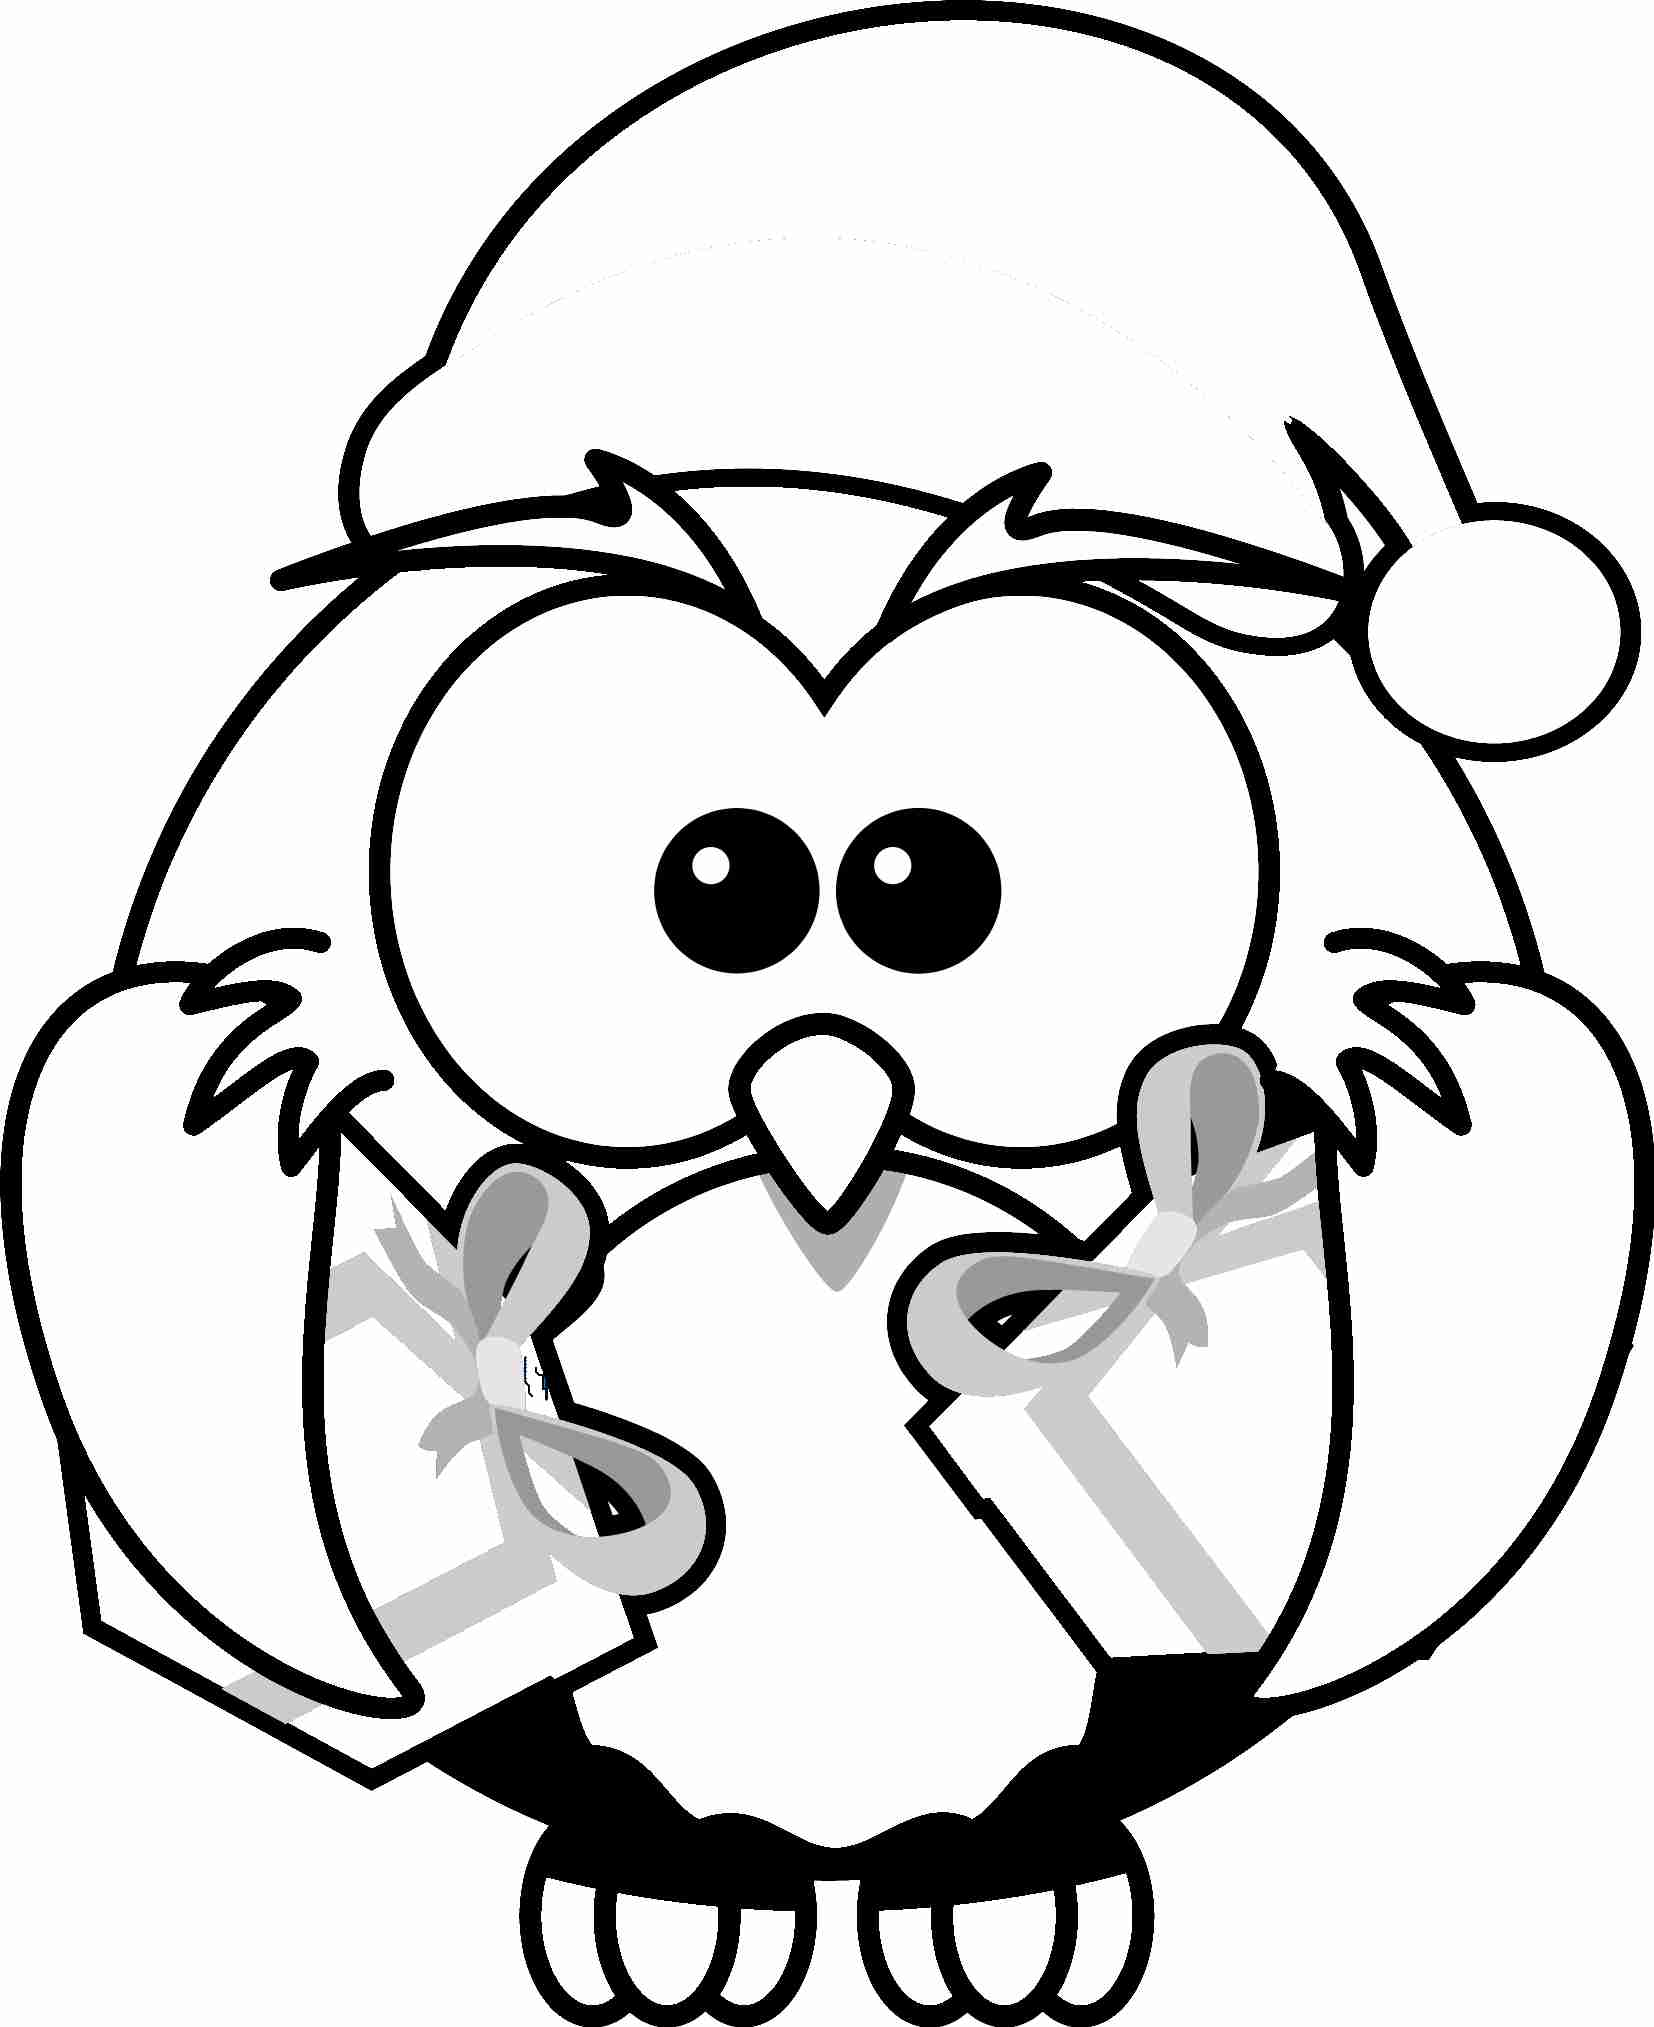 Christmas Colouring Pages Cute With Free Father Pictures To Colour Download Clip Art